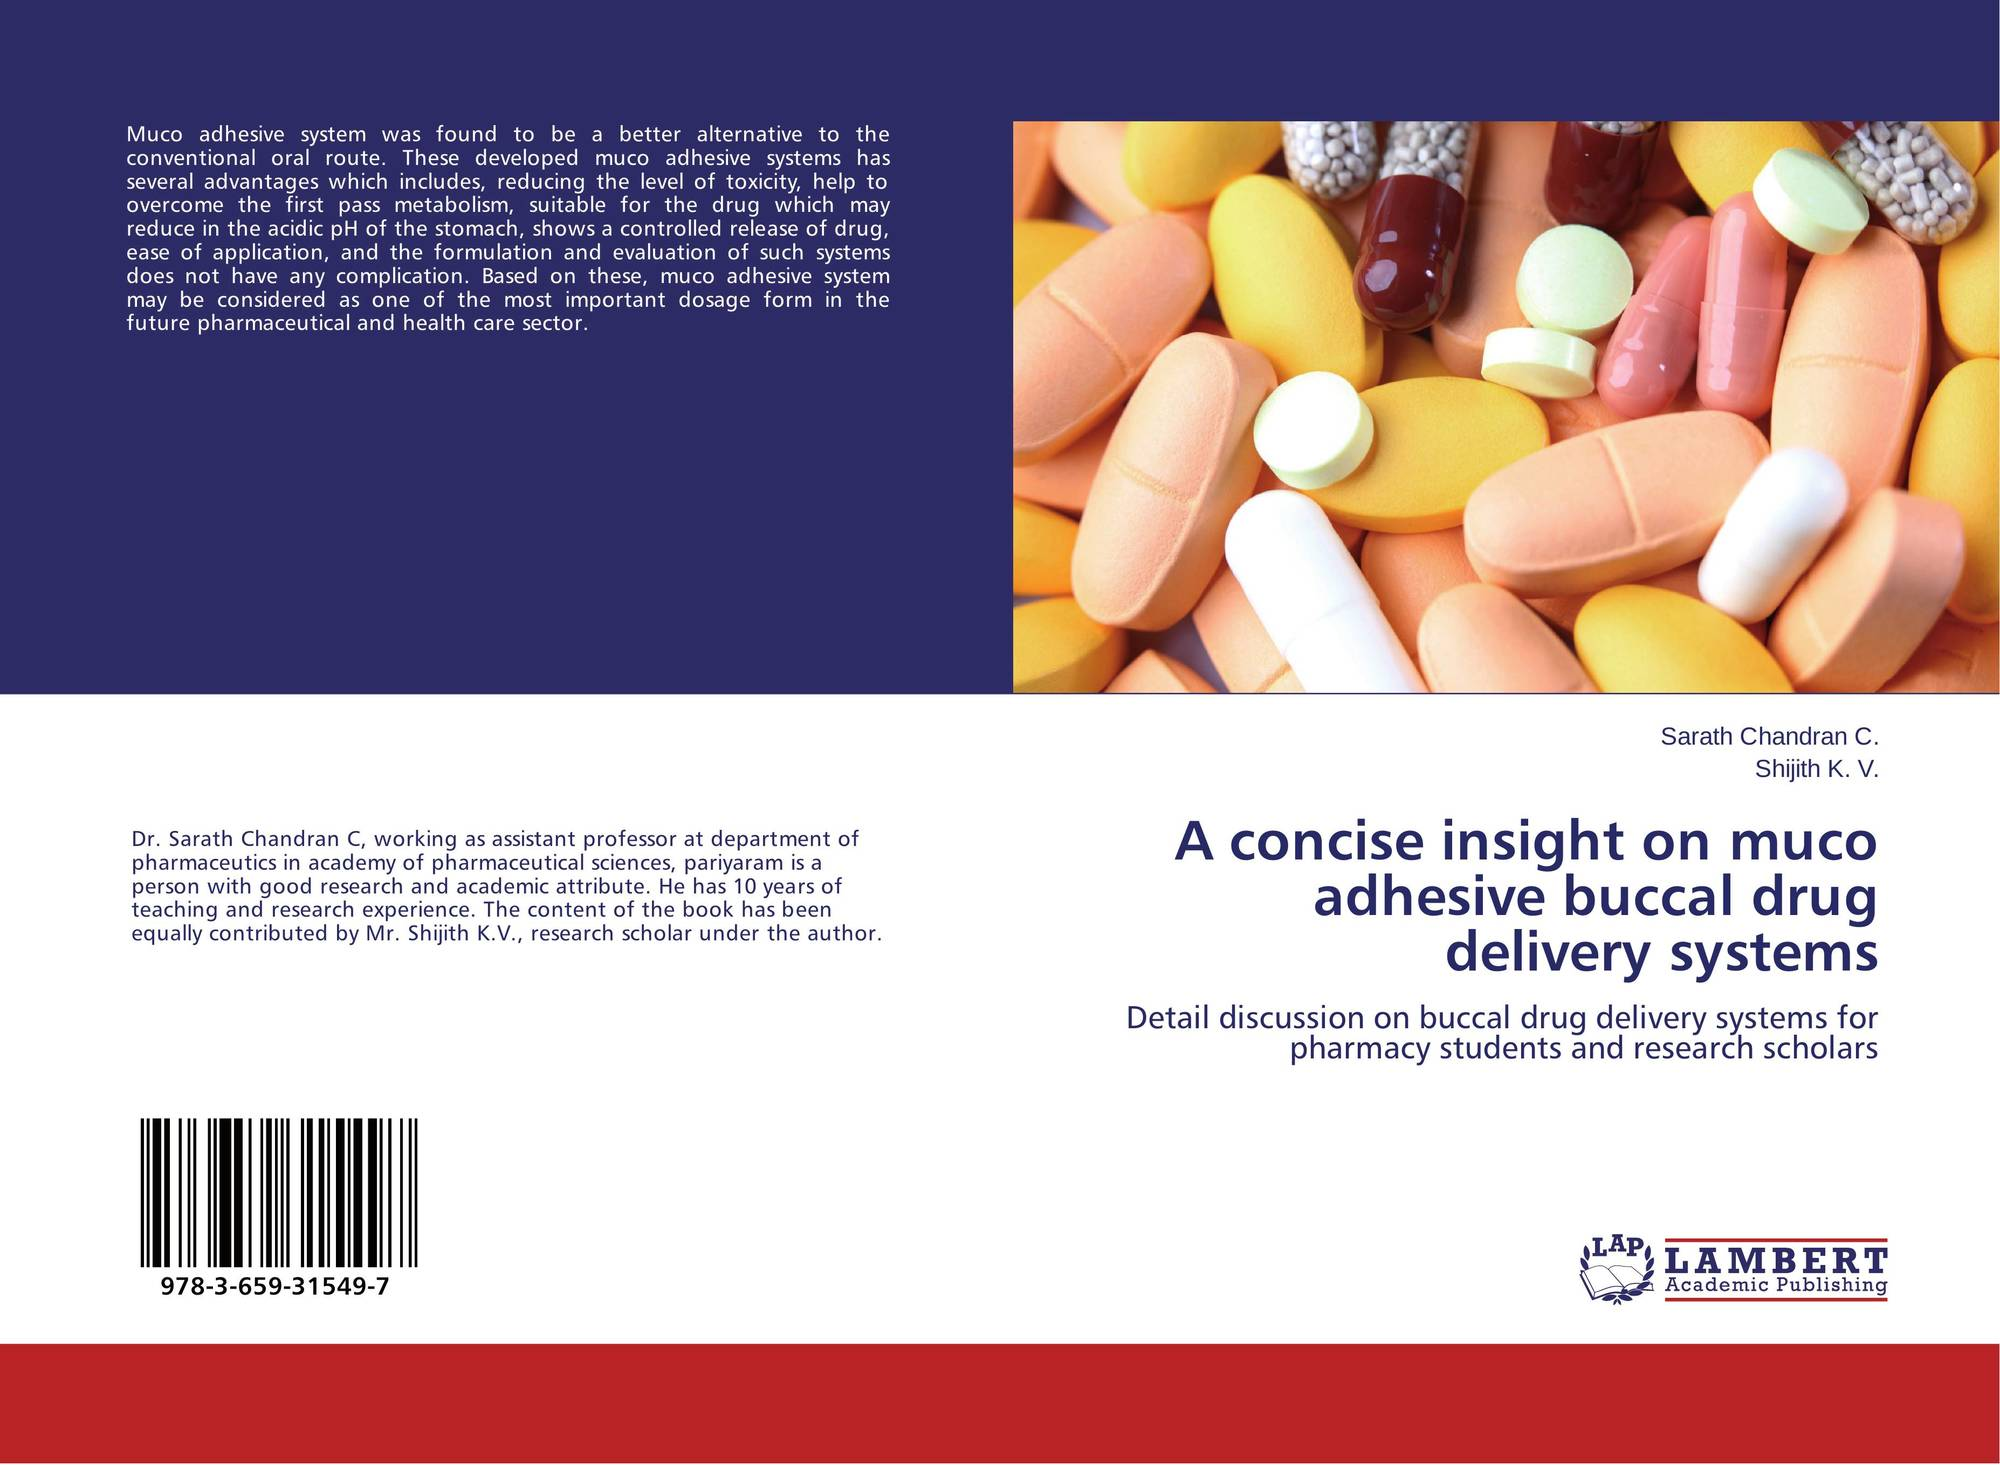 drug delivery The greatest challenge in oncological drug delivery is achieving successful penetration and distribution of the therapeutic agent throughout the tumour.